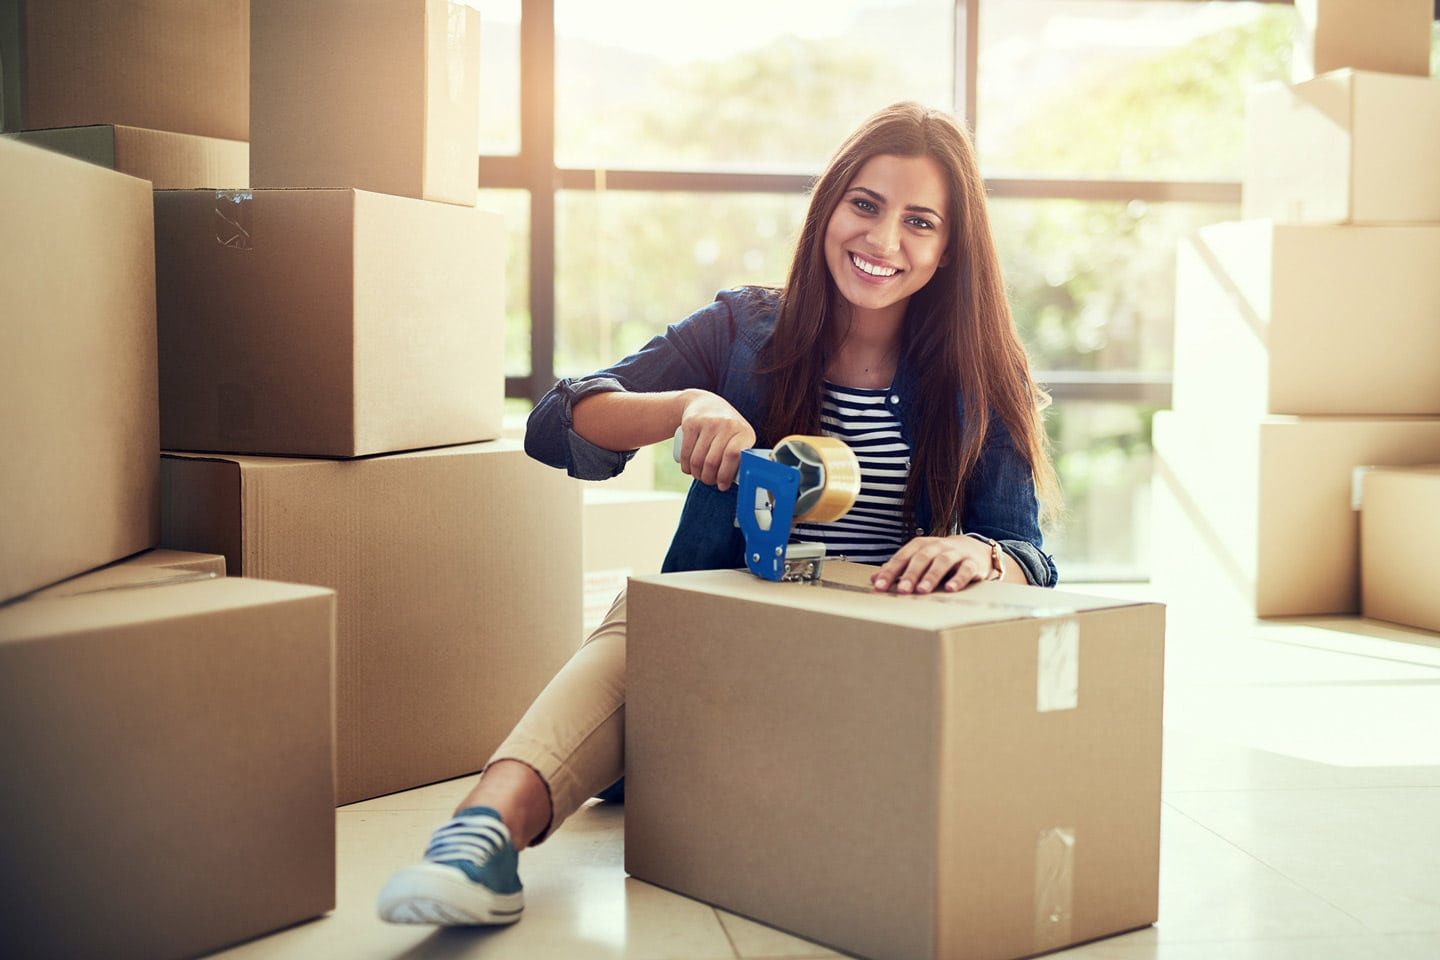 Woman packing boxes for a business relocation move